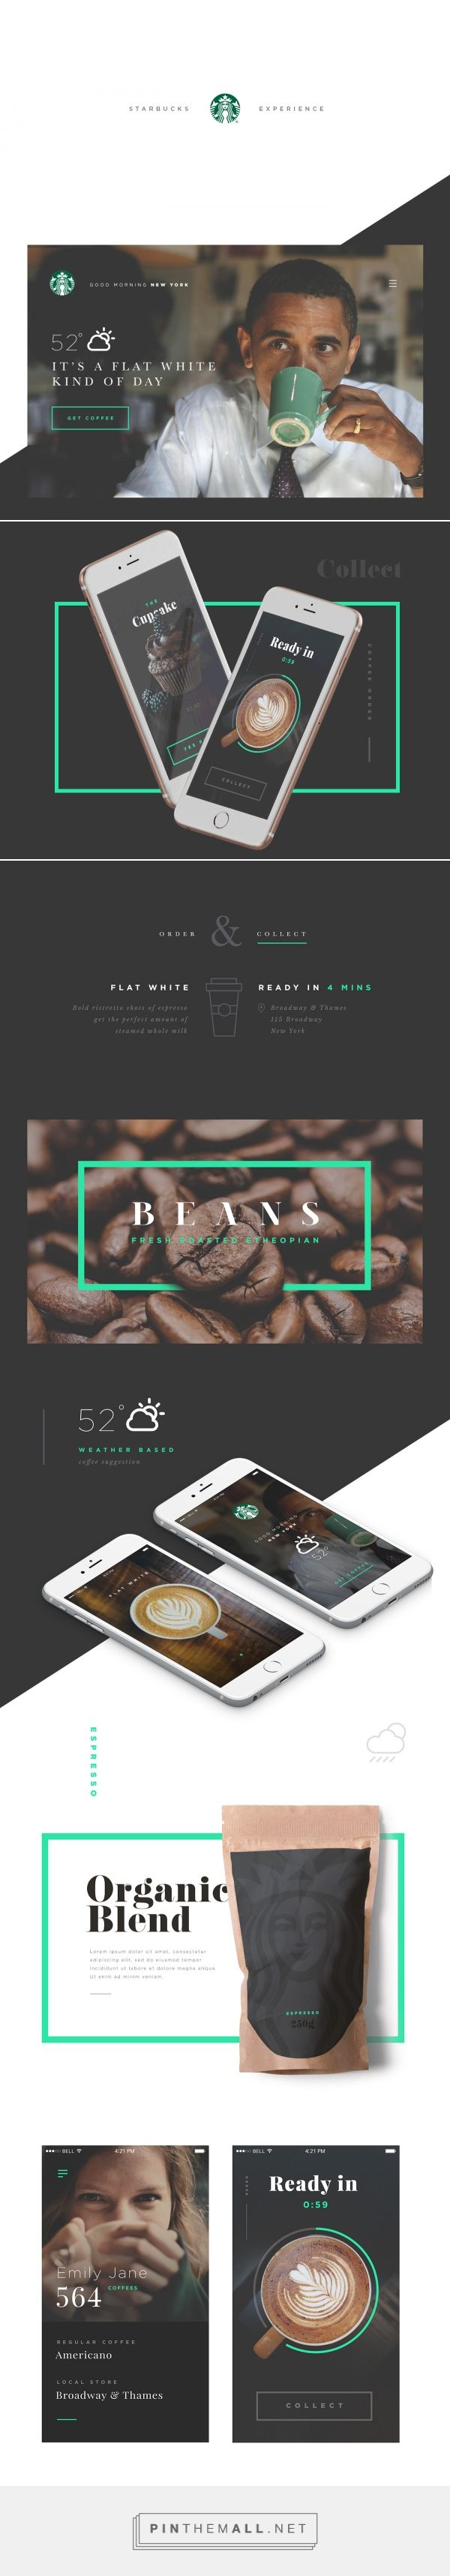 Starbucks Experience on Behance... - a grouped images picture - Pin Them All